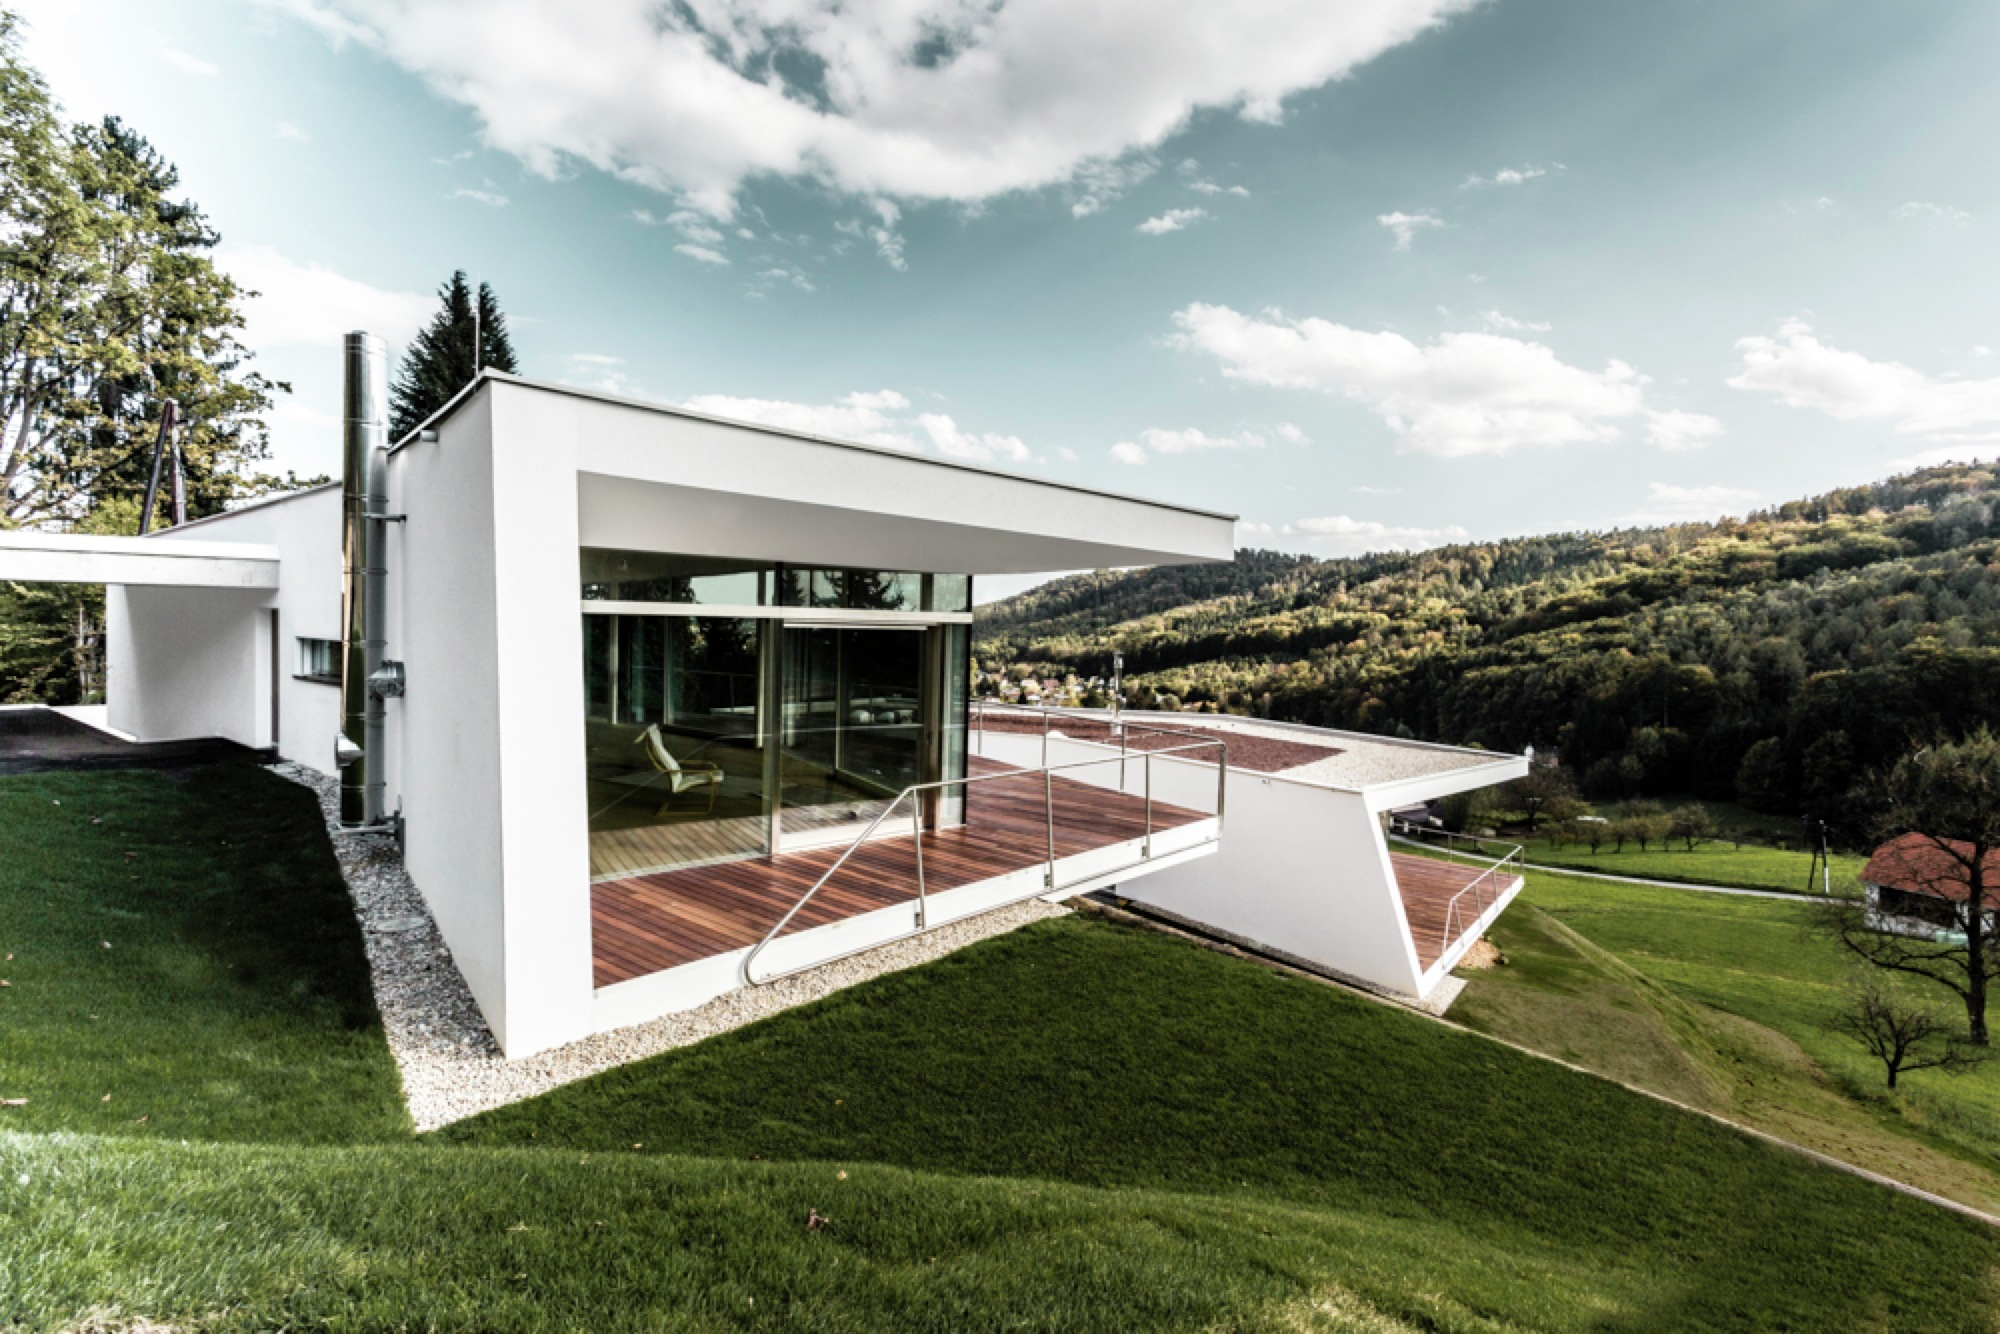 Gallery of villas 2b love architecture and urbanism 1 for Moderne architektur villa